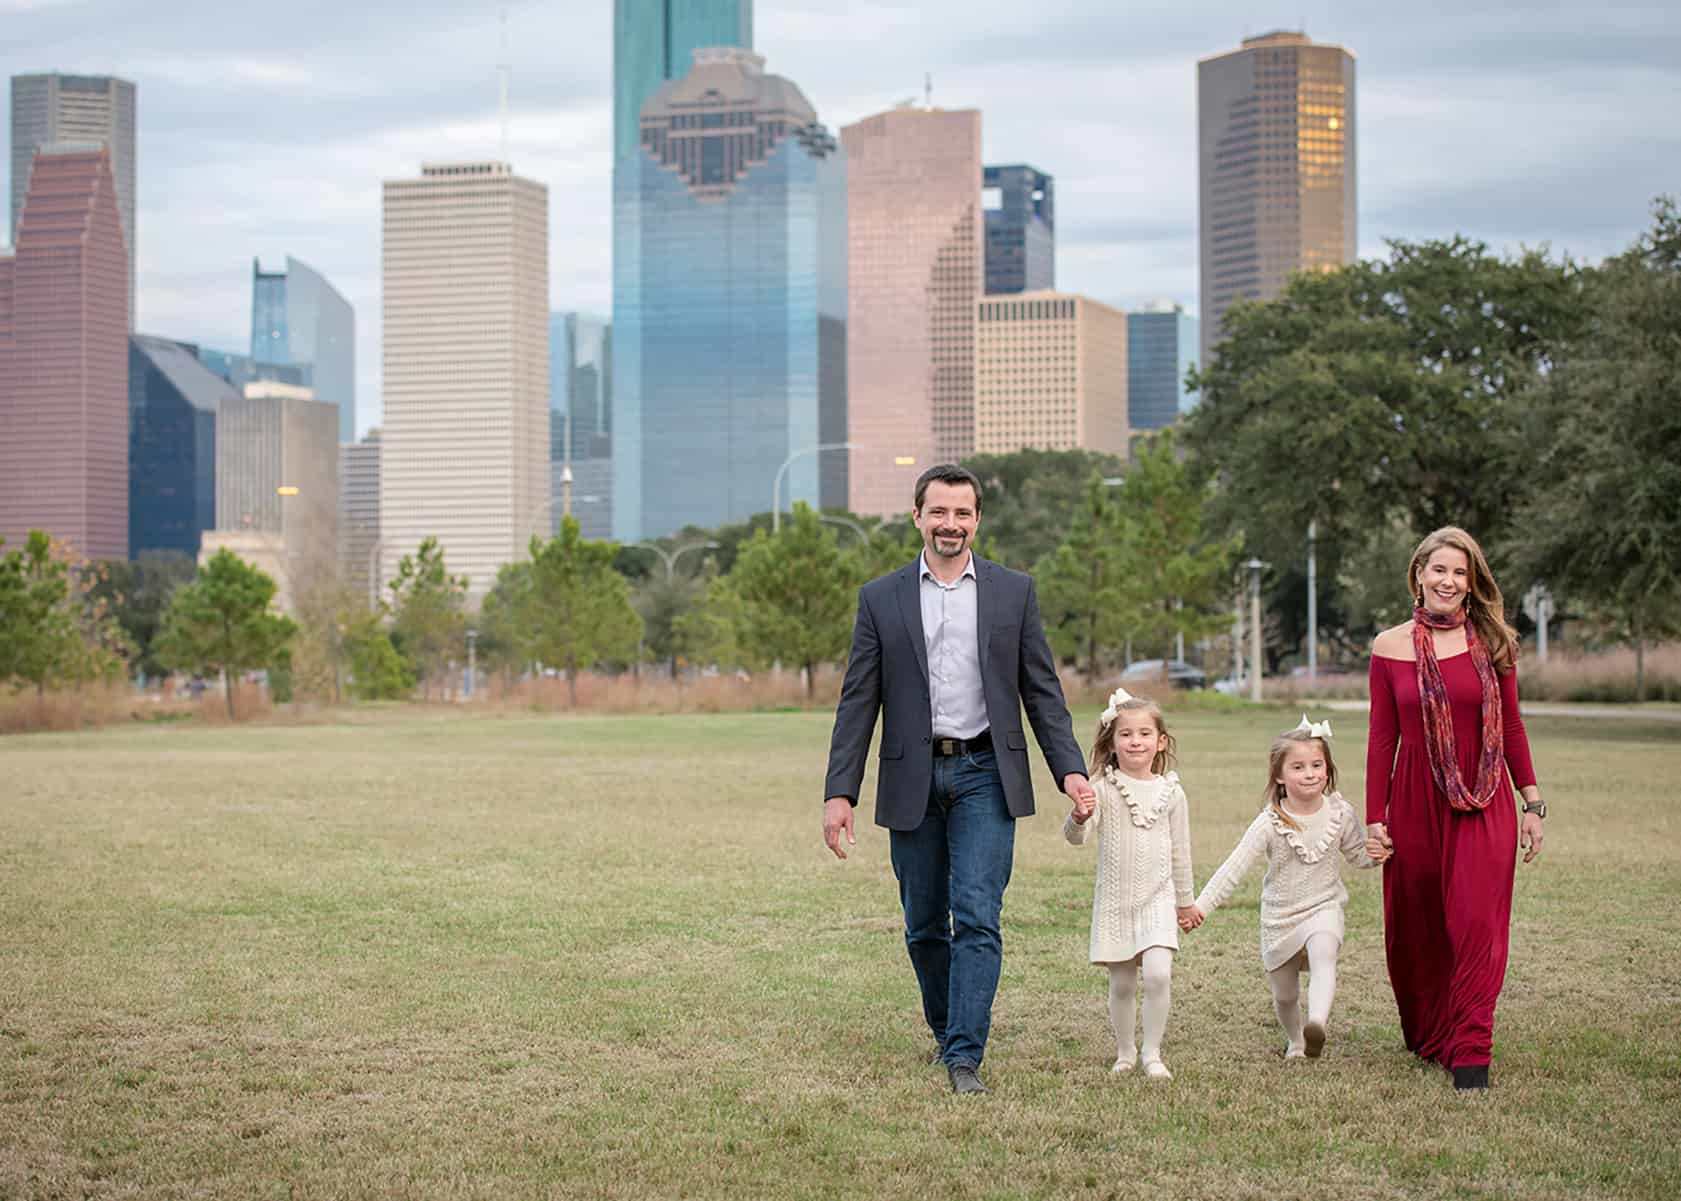 Family with twins for outdoor downtown photoshoot